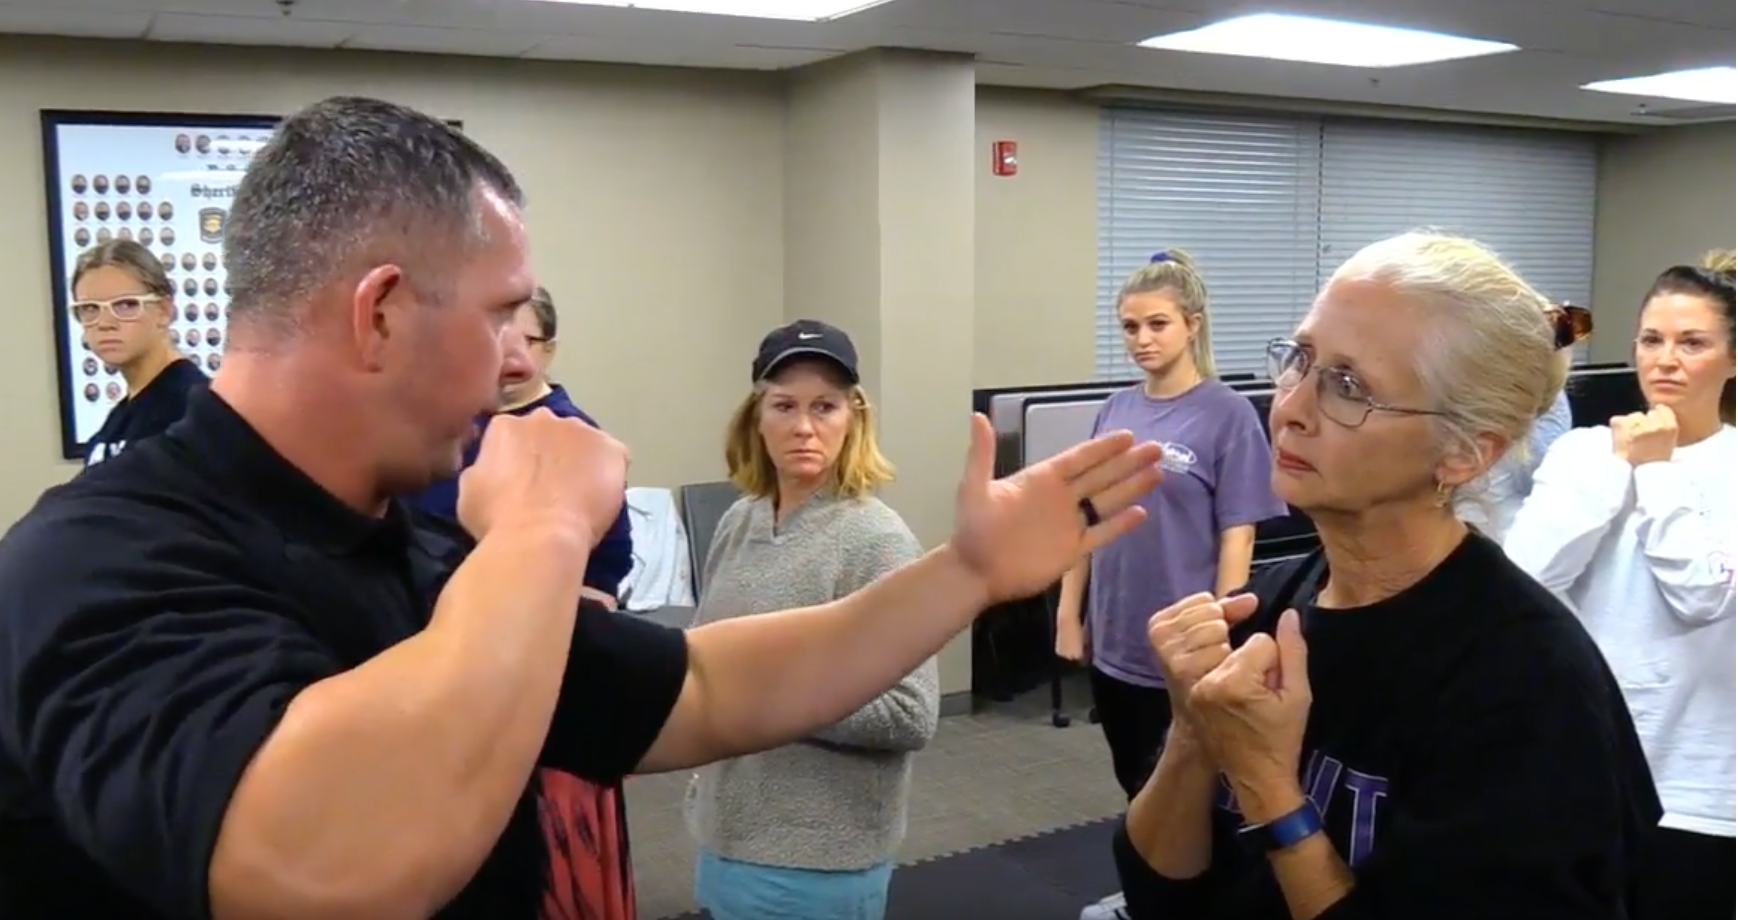 Sheriffs Department Offering Women's Self-Defense Class